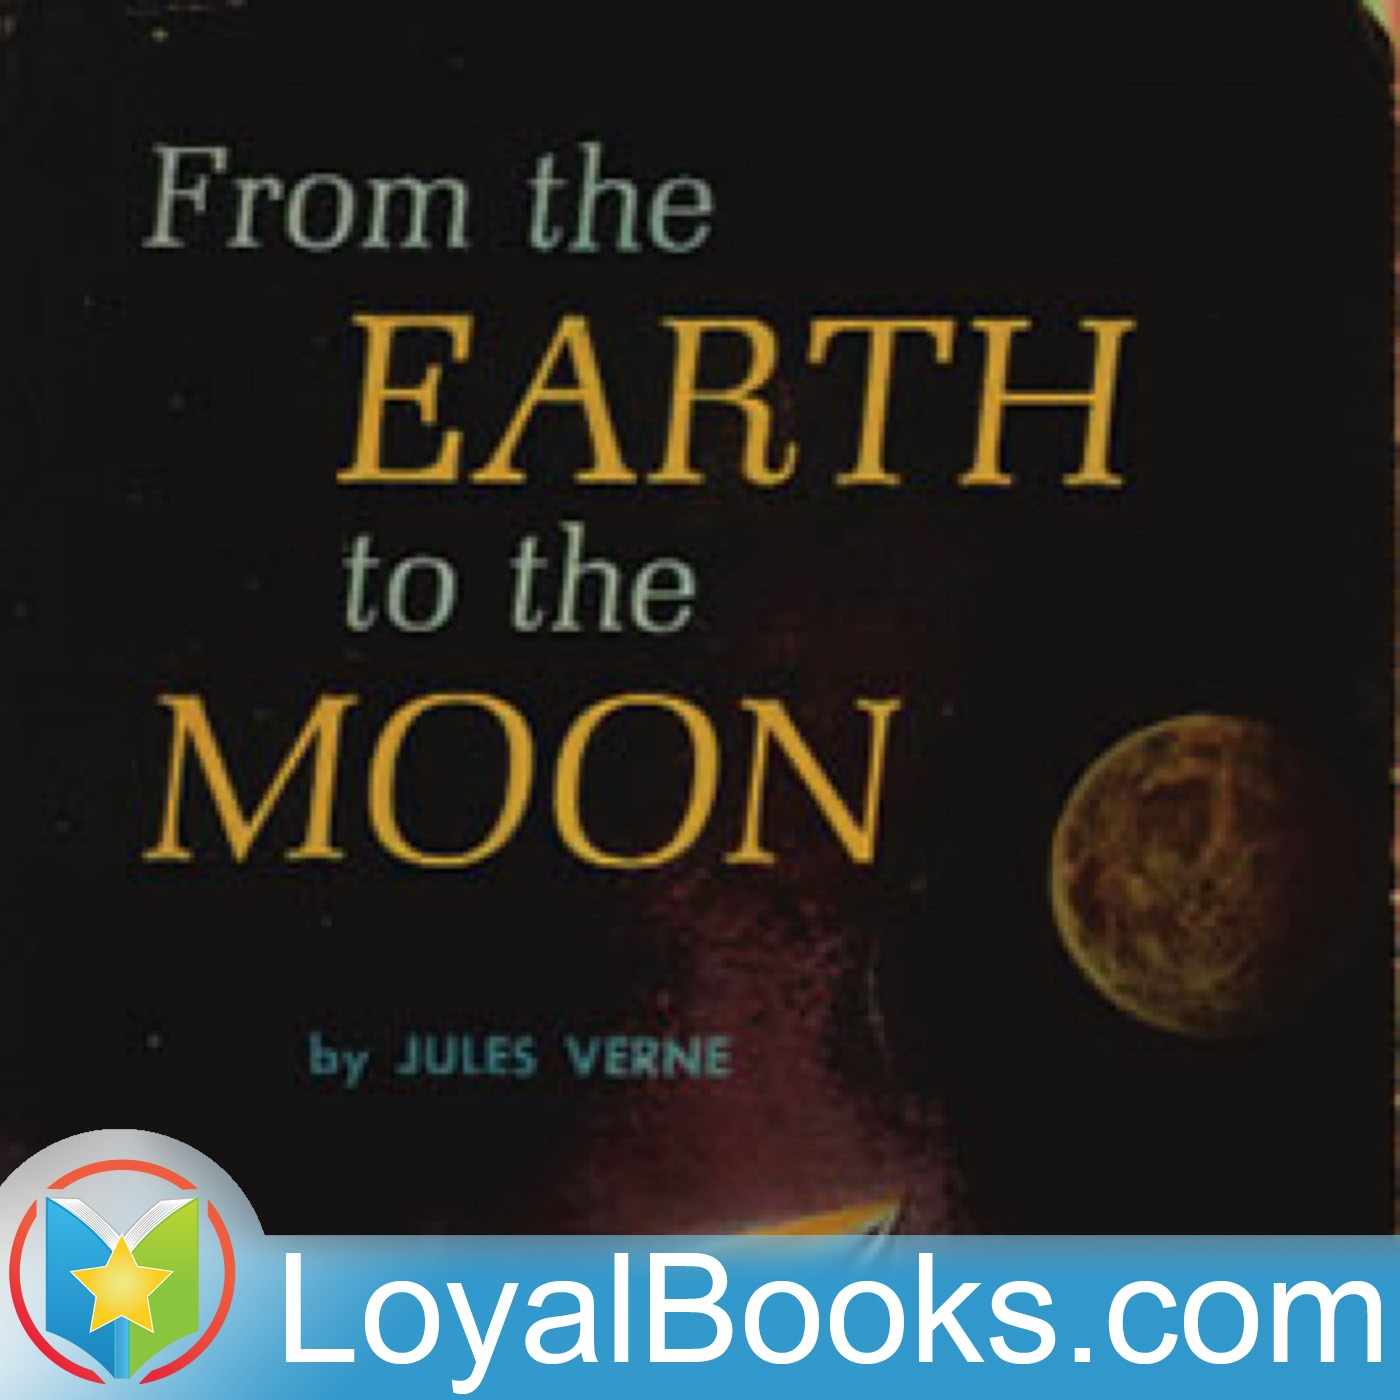 <![CDATA[From the Earth to the Moon by Jules Verne]]>